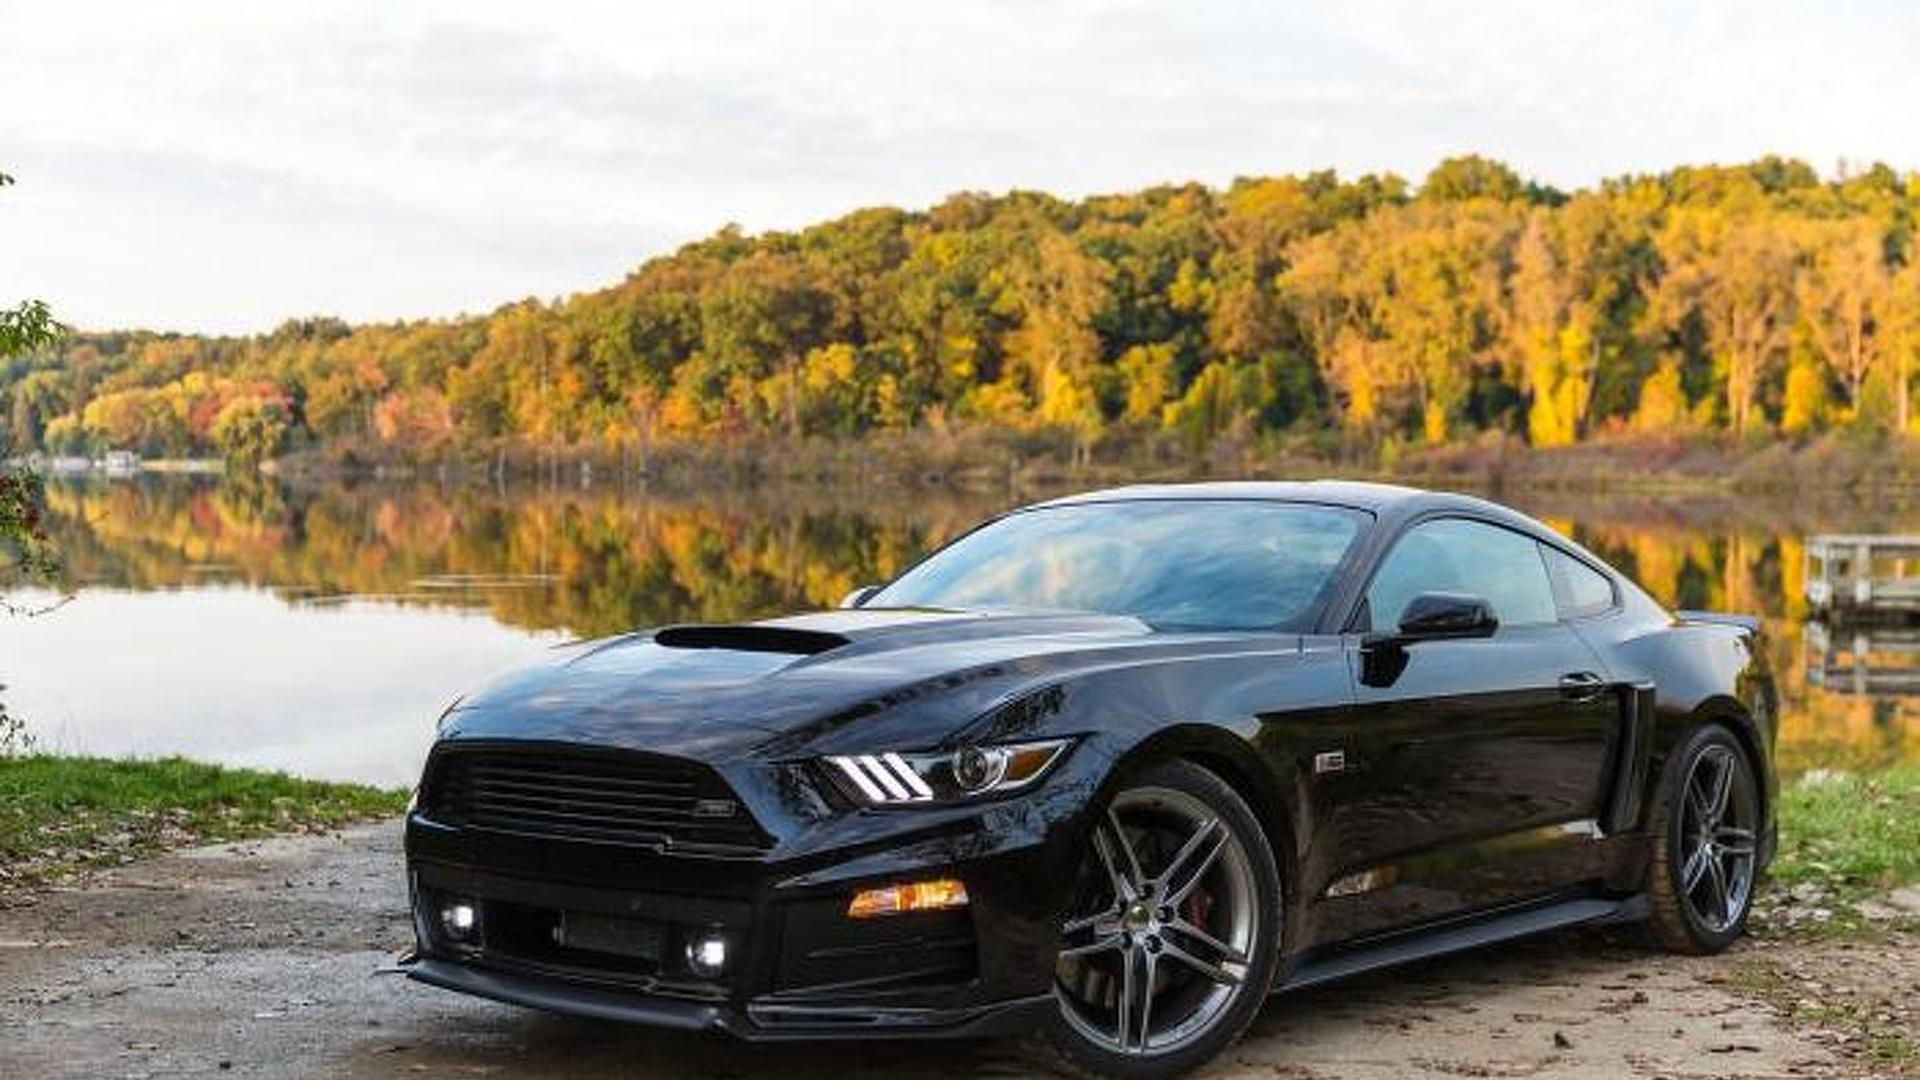 2015 Ford Mustang GT gets 600 bhp thanks to Roush supercharger [video]